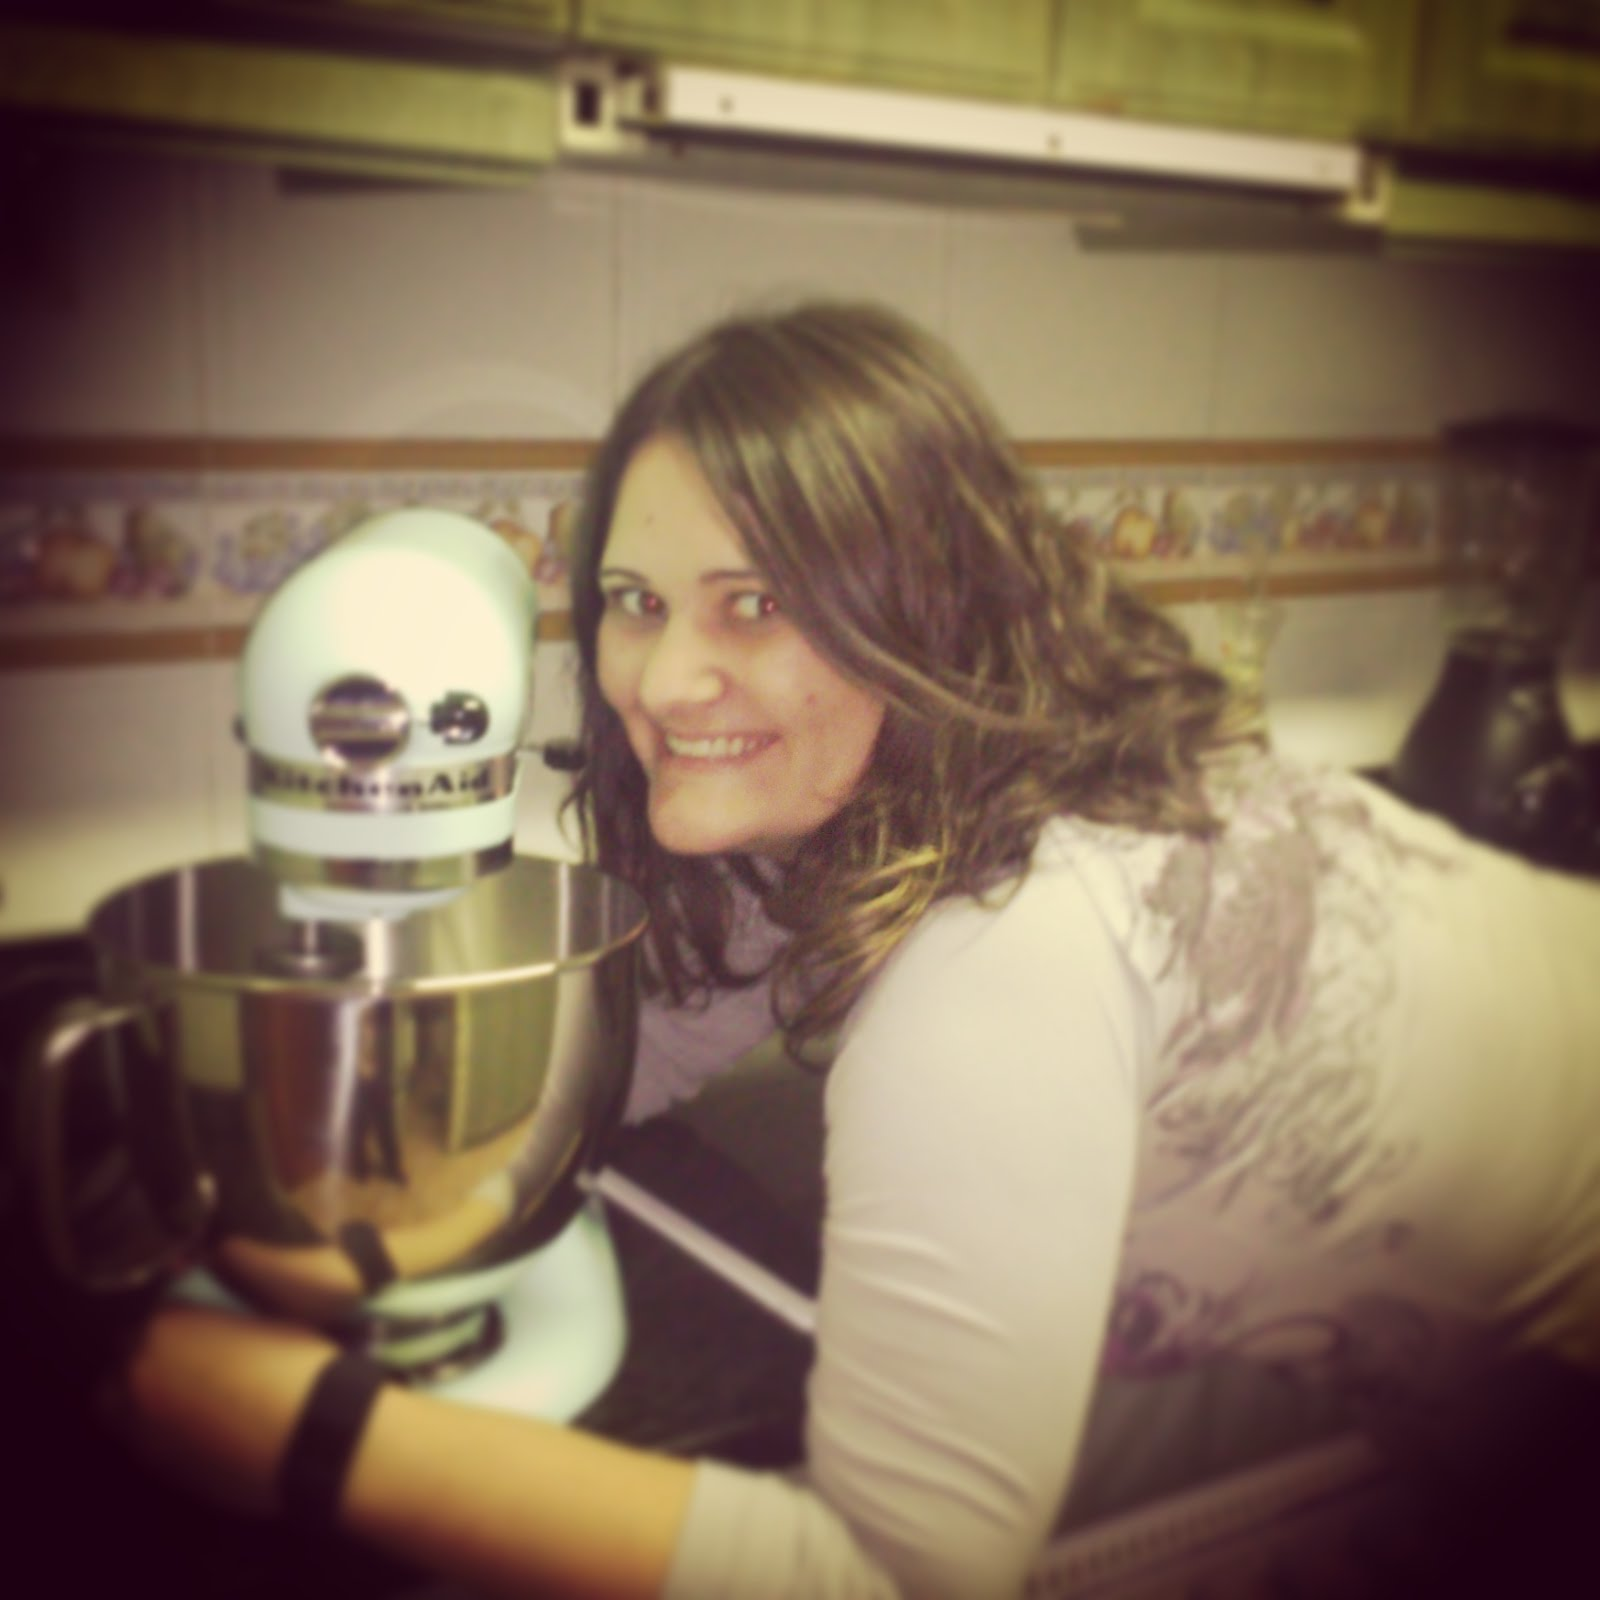 #Kitchenaid en mi poder